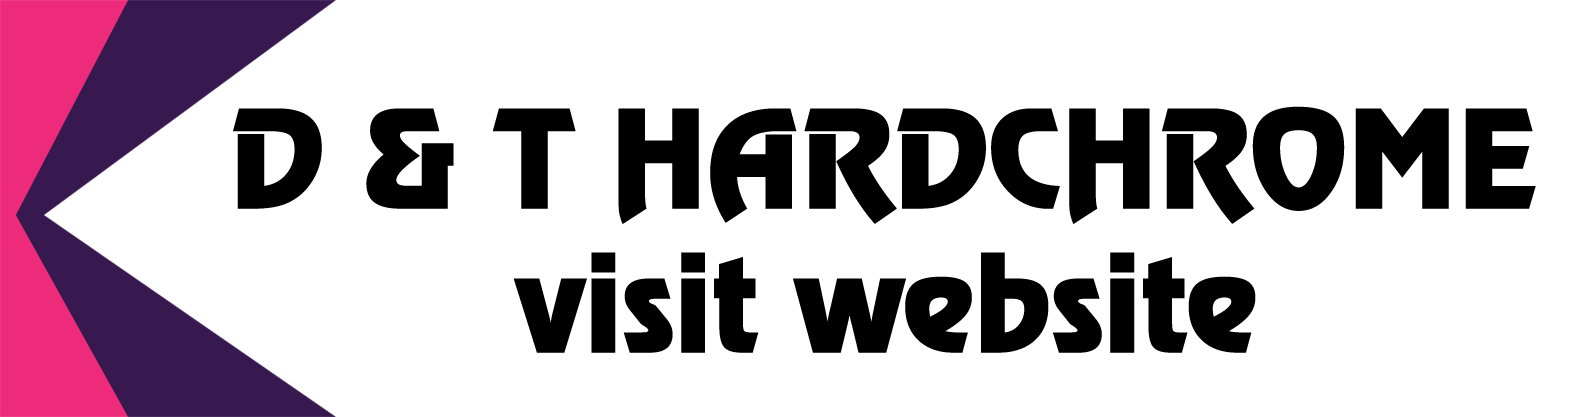 D&T Hardchrome Mackay Visit Website